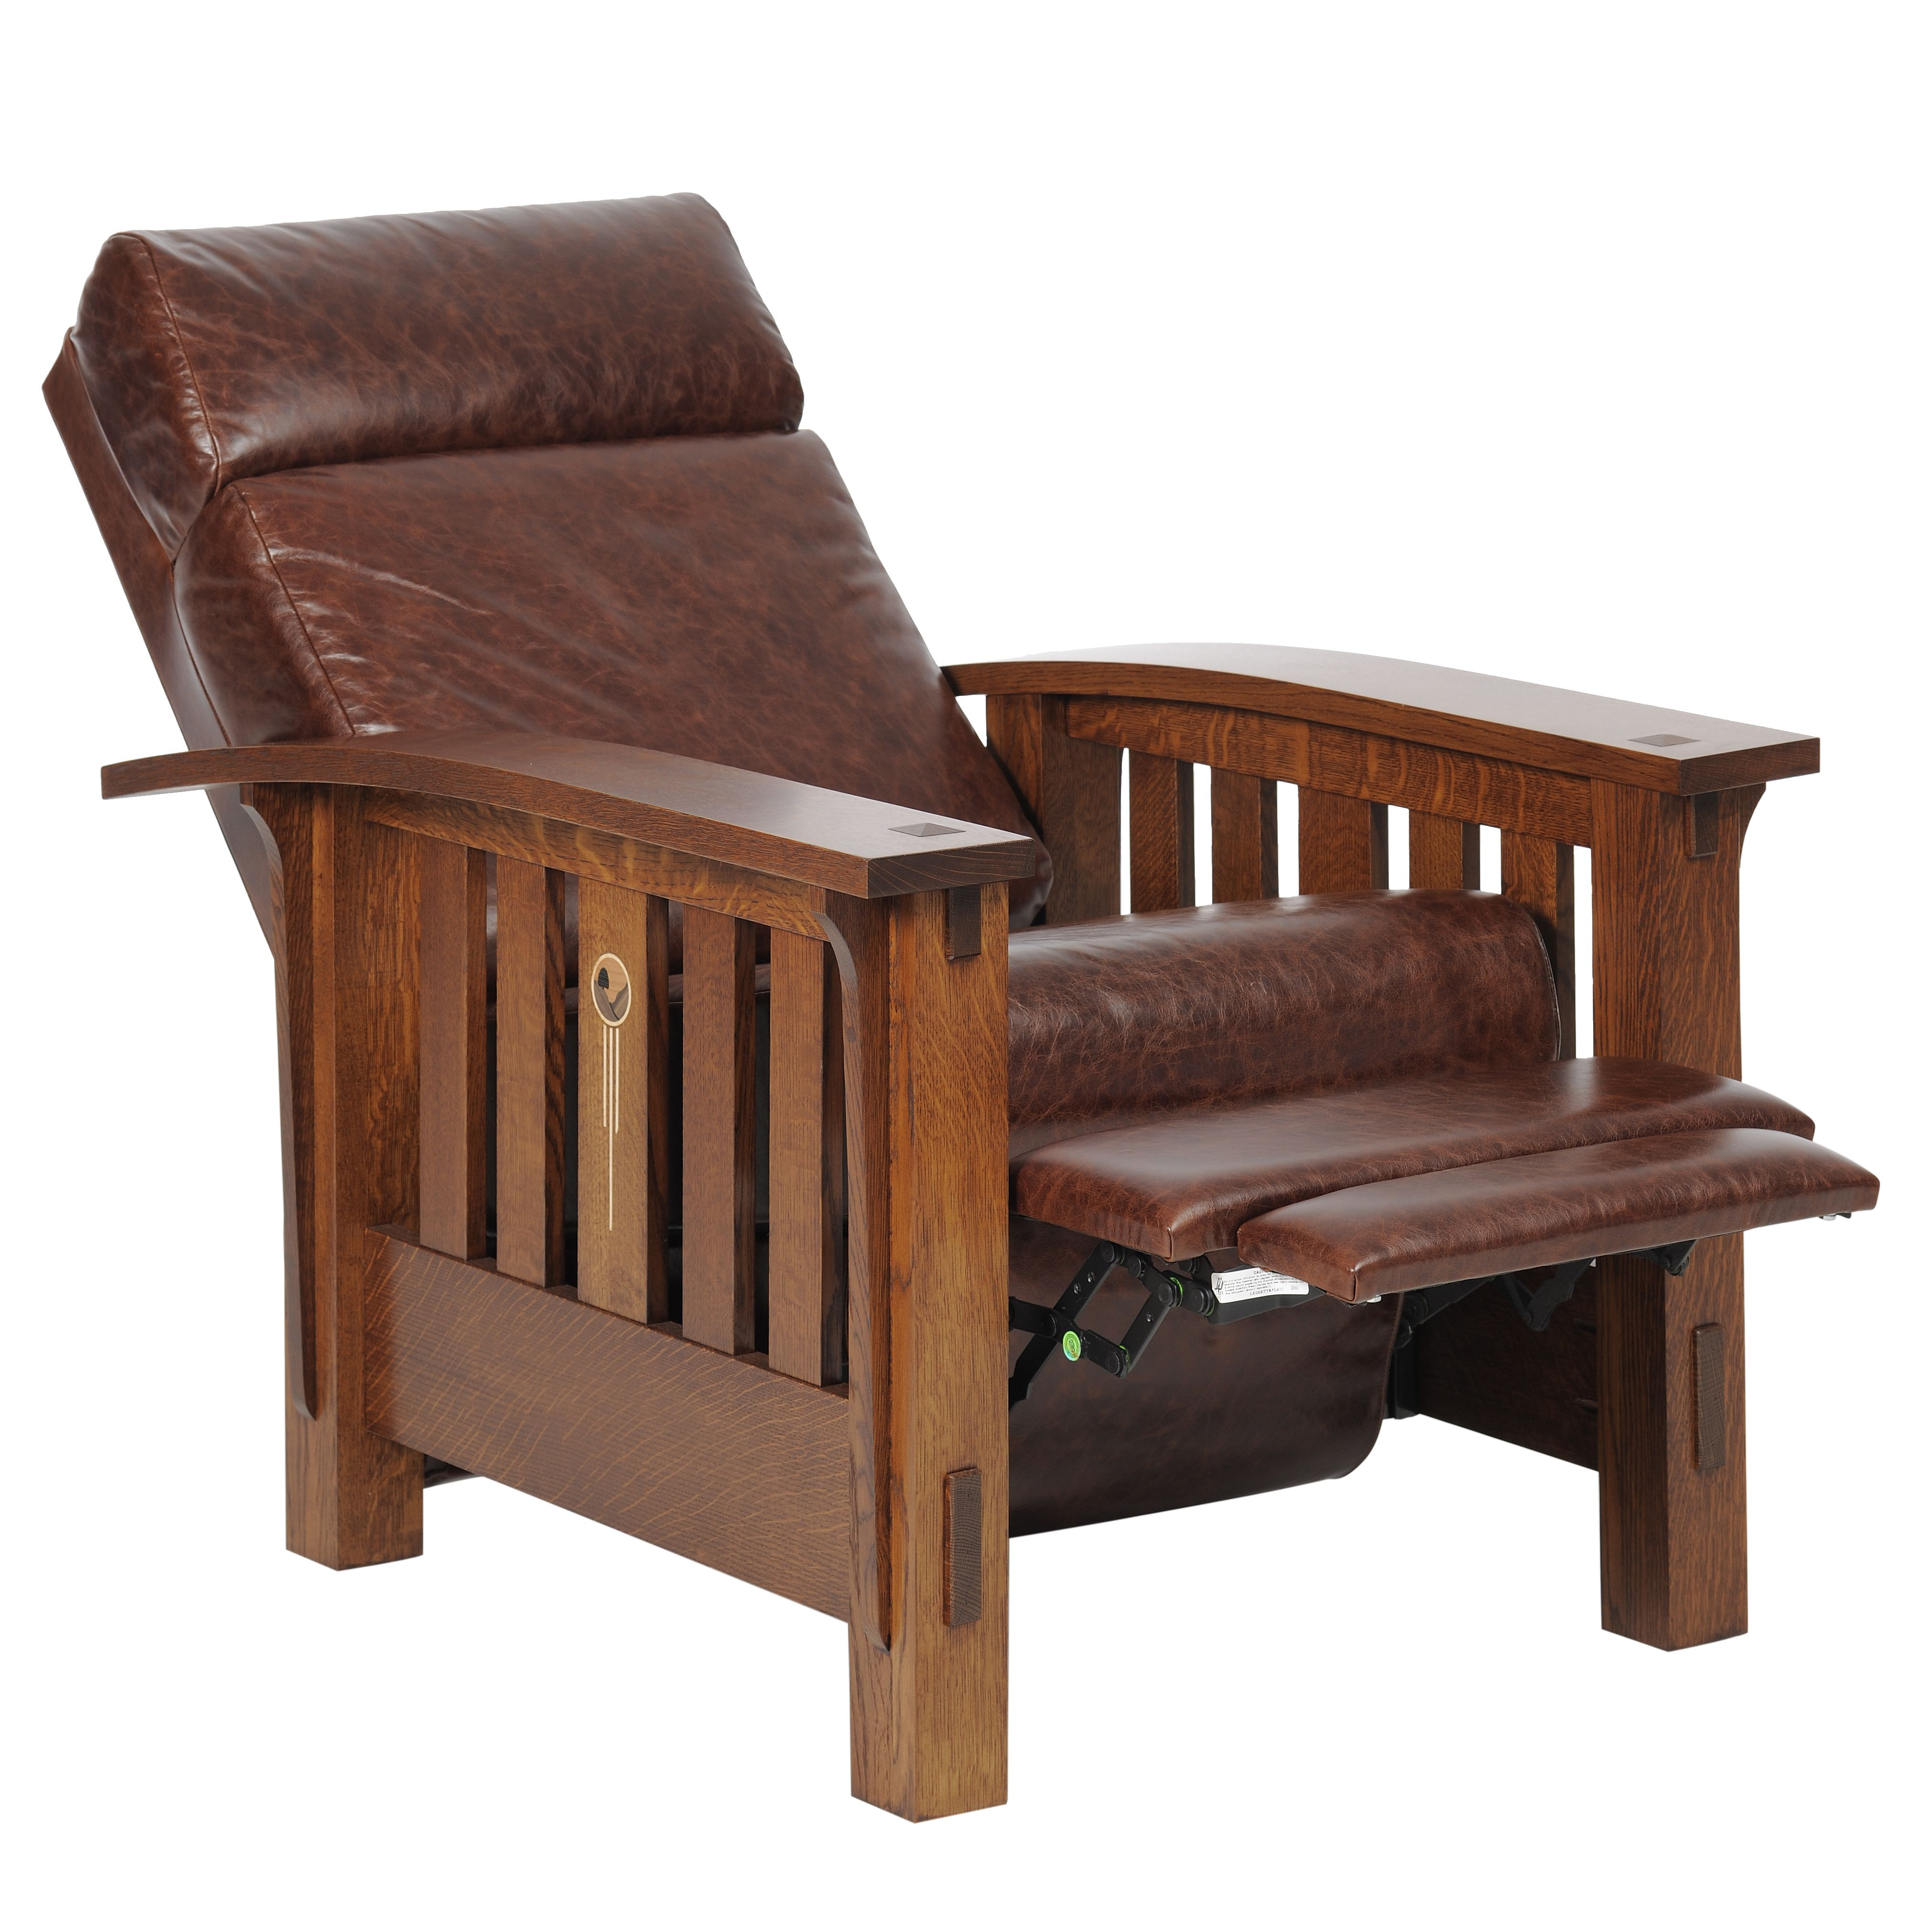 craftsman style chairs conference room with wheels and arms the collection pays tribute to individuality